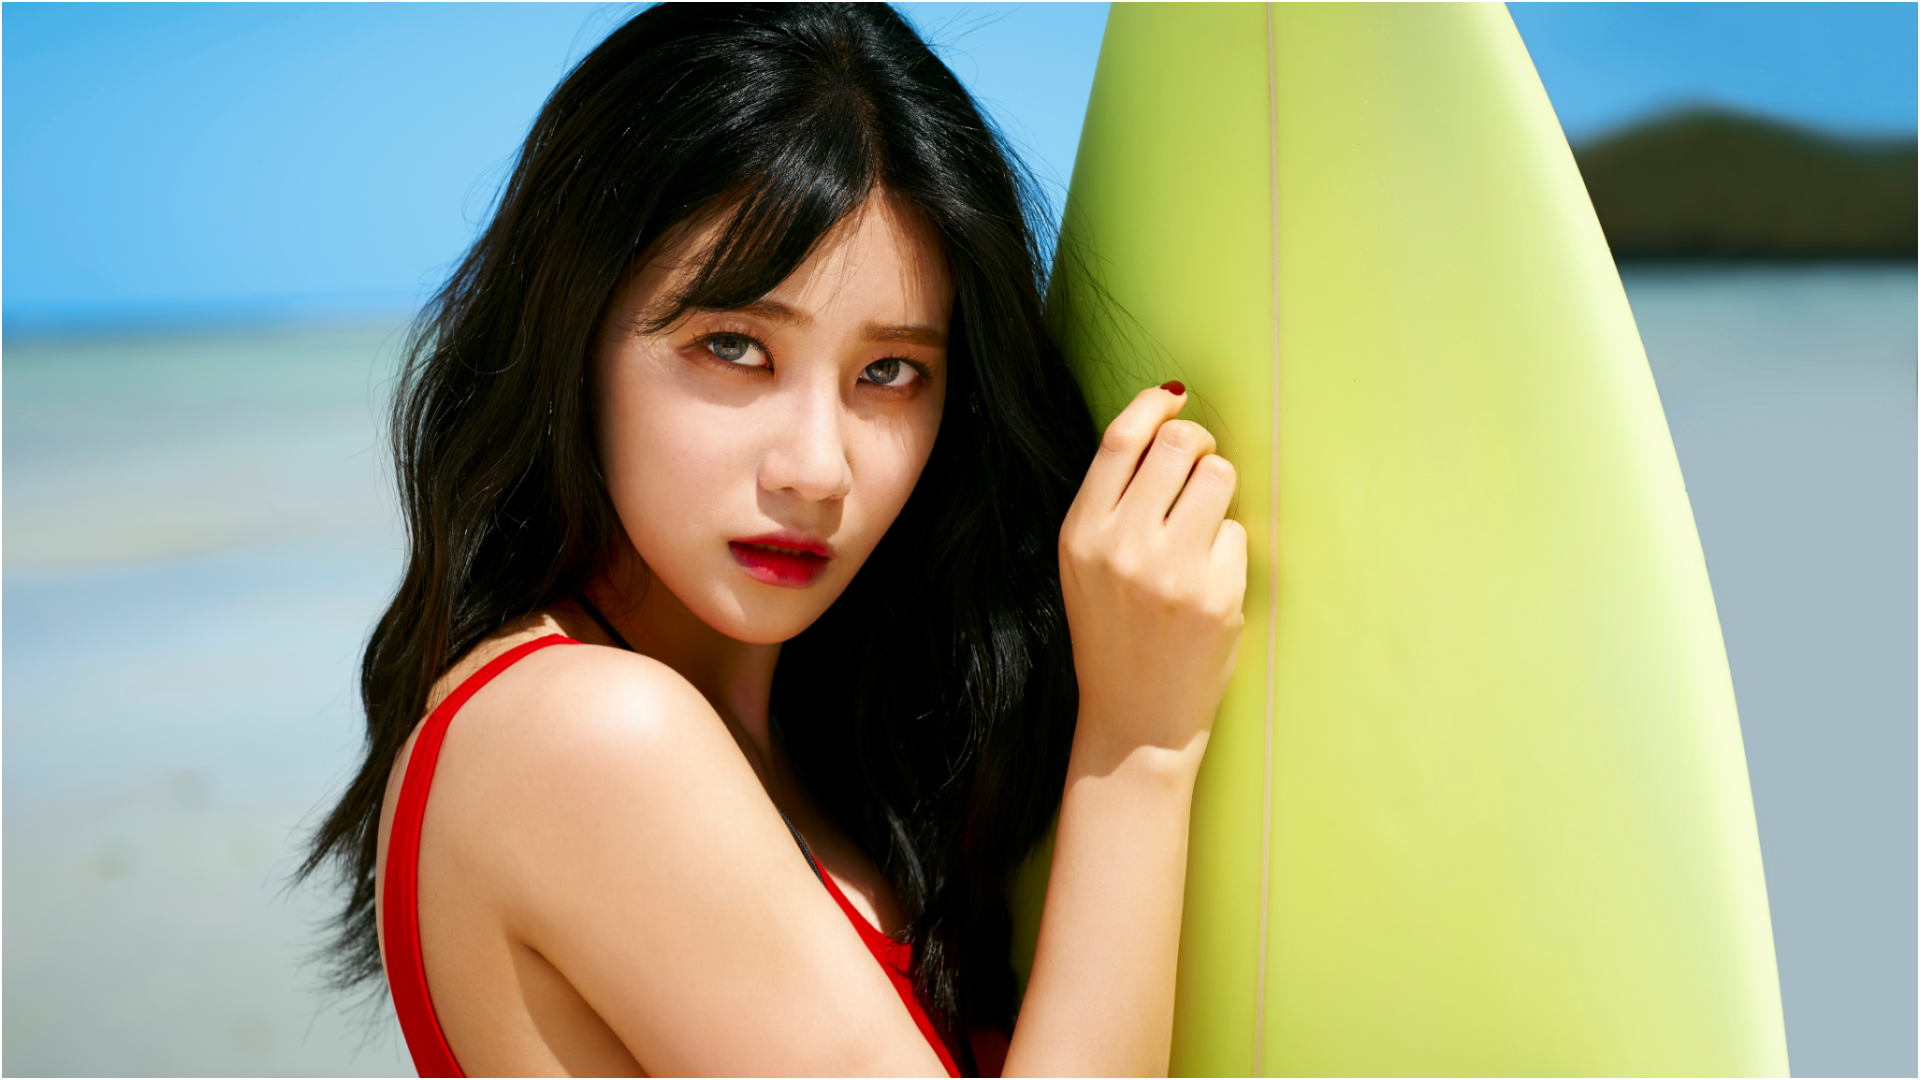 Kwon Mina demands justice for bullying in AOA: the complete story